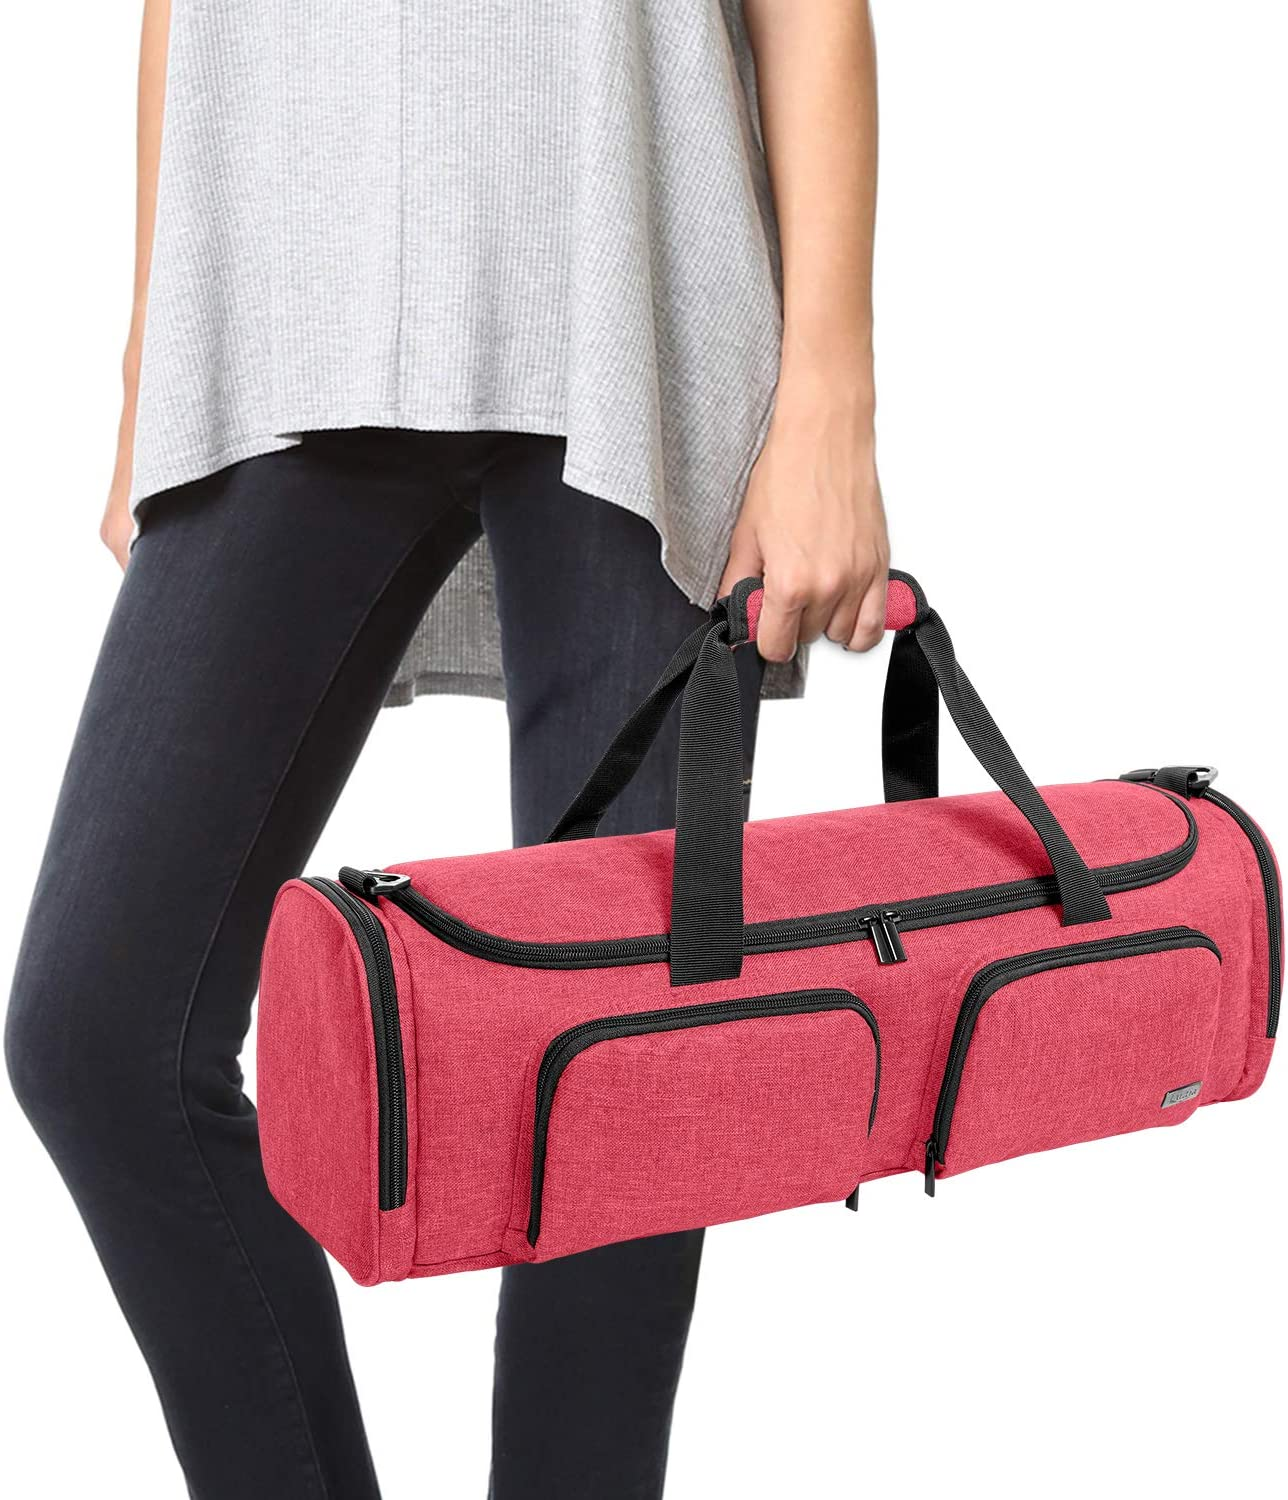 Red Luxja Bag for Cricut Explore Air Carrying Case for Cricut Die-Cut Machine and Accessories Air2 and Maker Bag Only